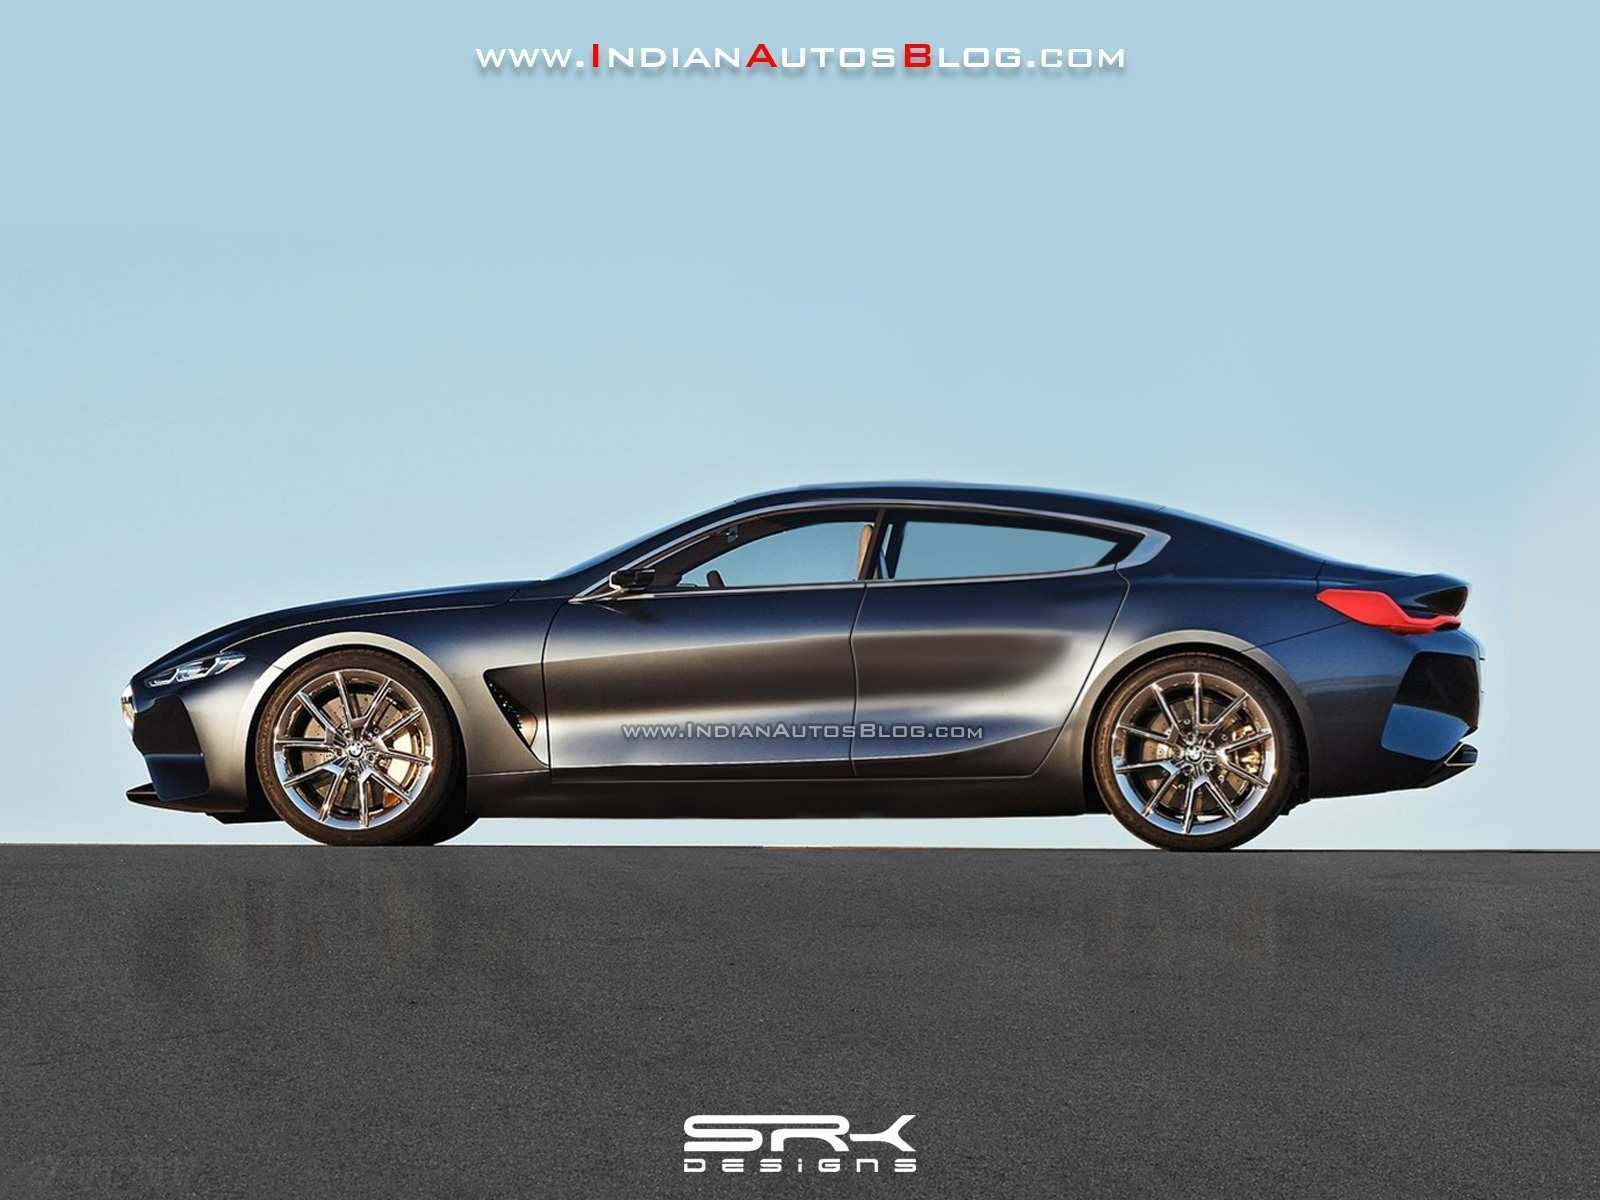 21 Best Review 2019 Bmw 8 Series Gran Coupe Specs for 2019 Bmw 8 Series Gran Coupe